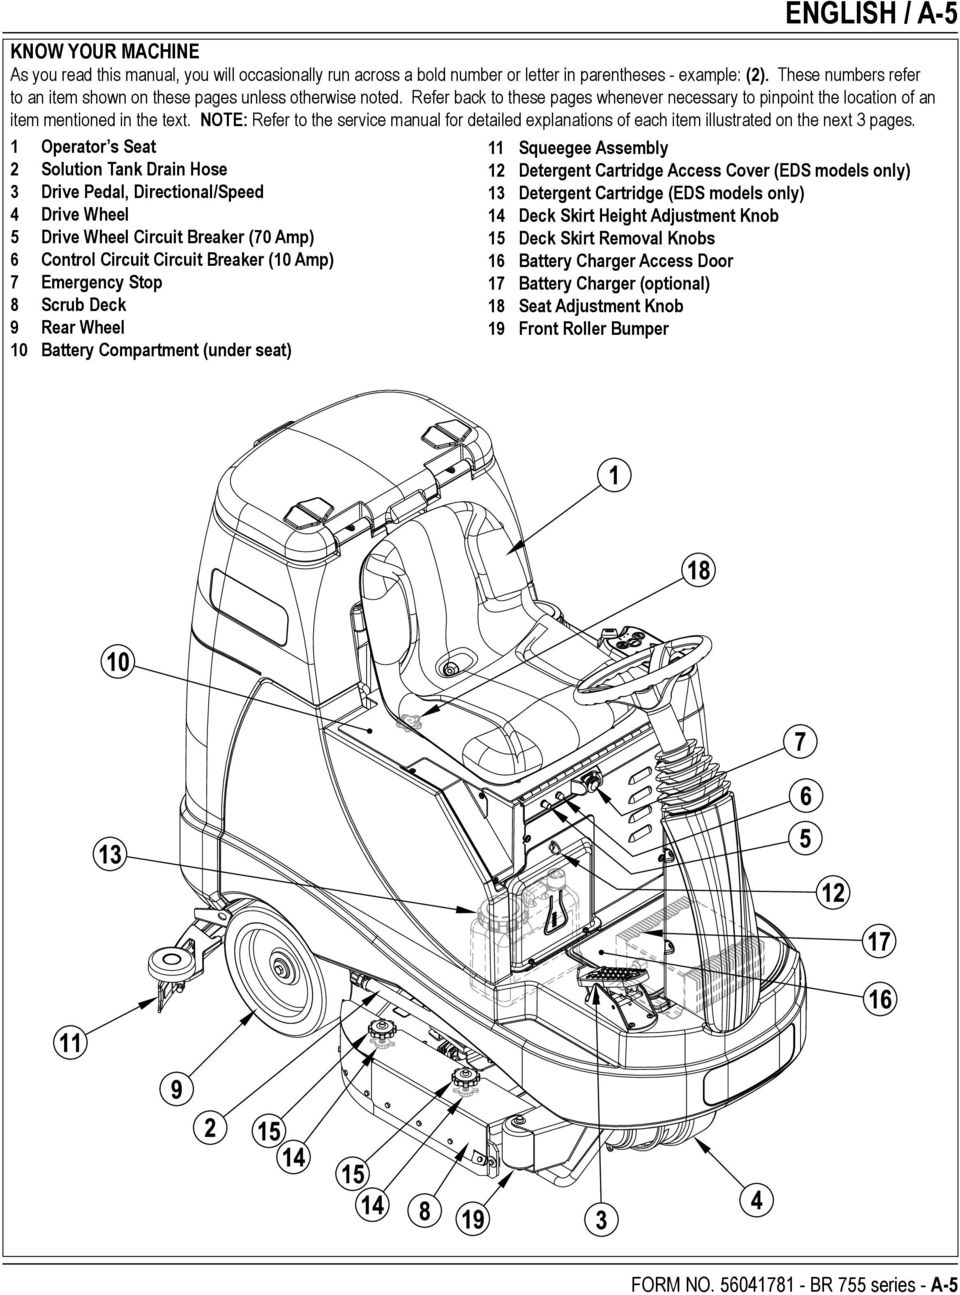 NOTE: Refer to the service manual for detailed explanations of each item illustrated on the next 3 pages.